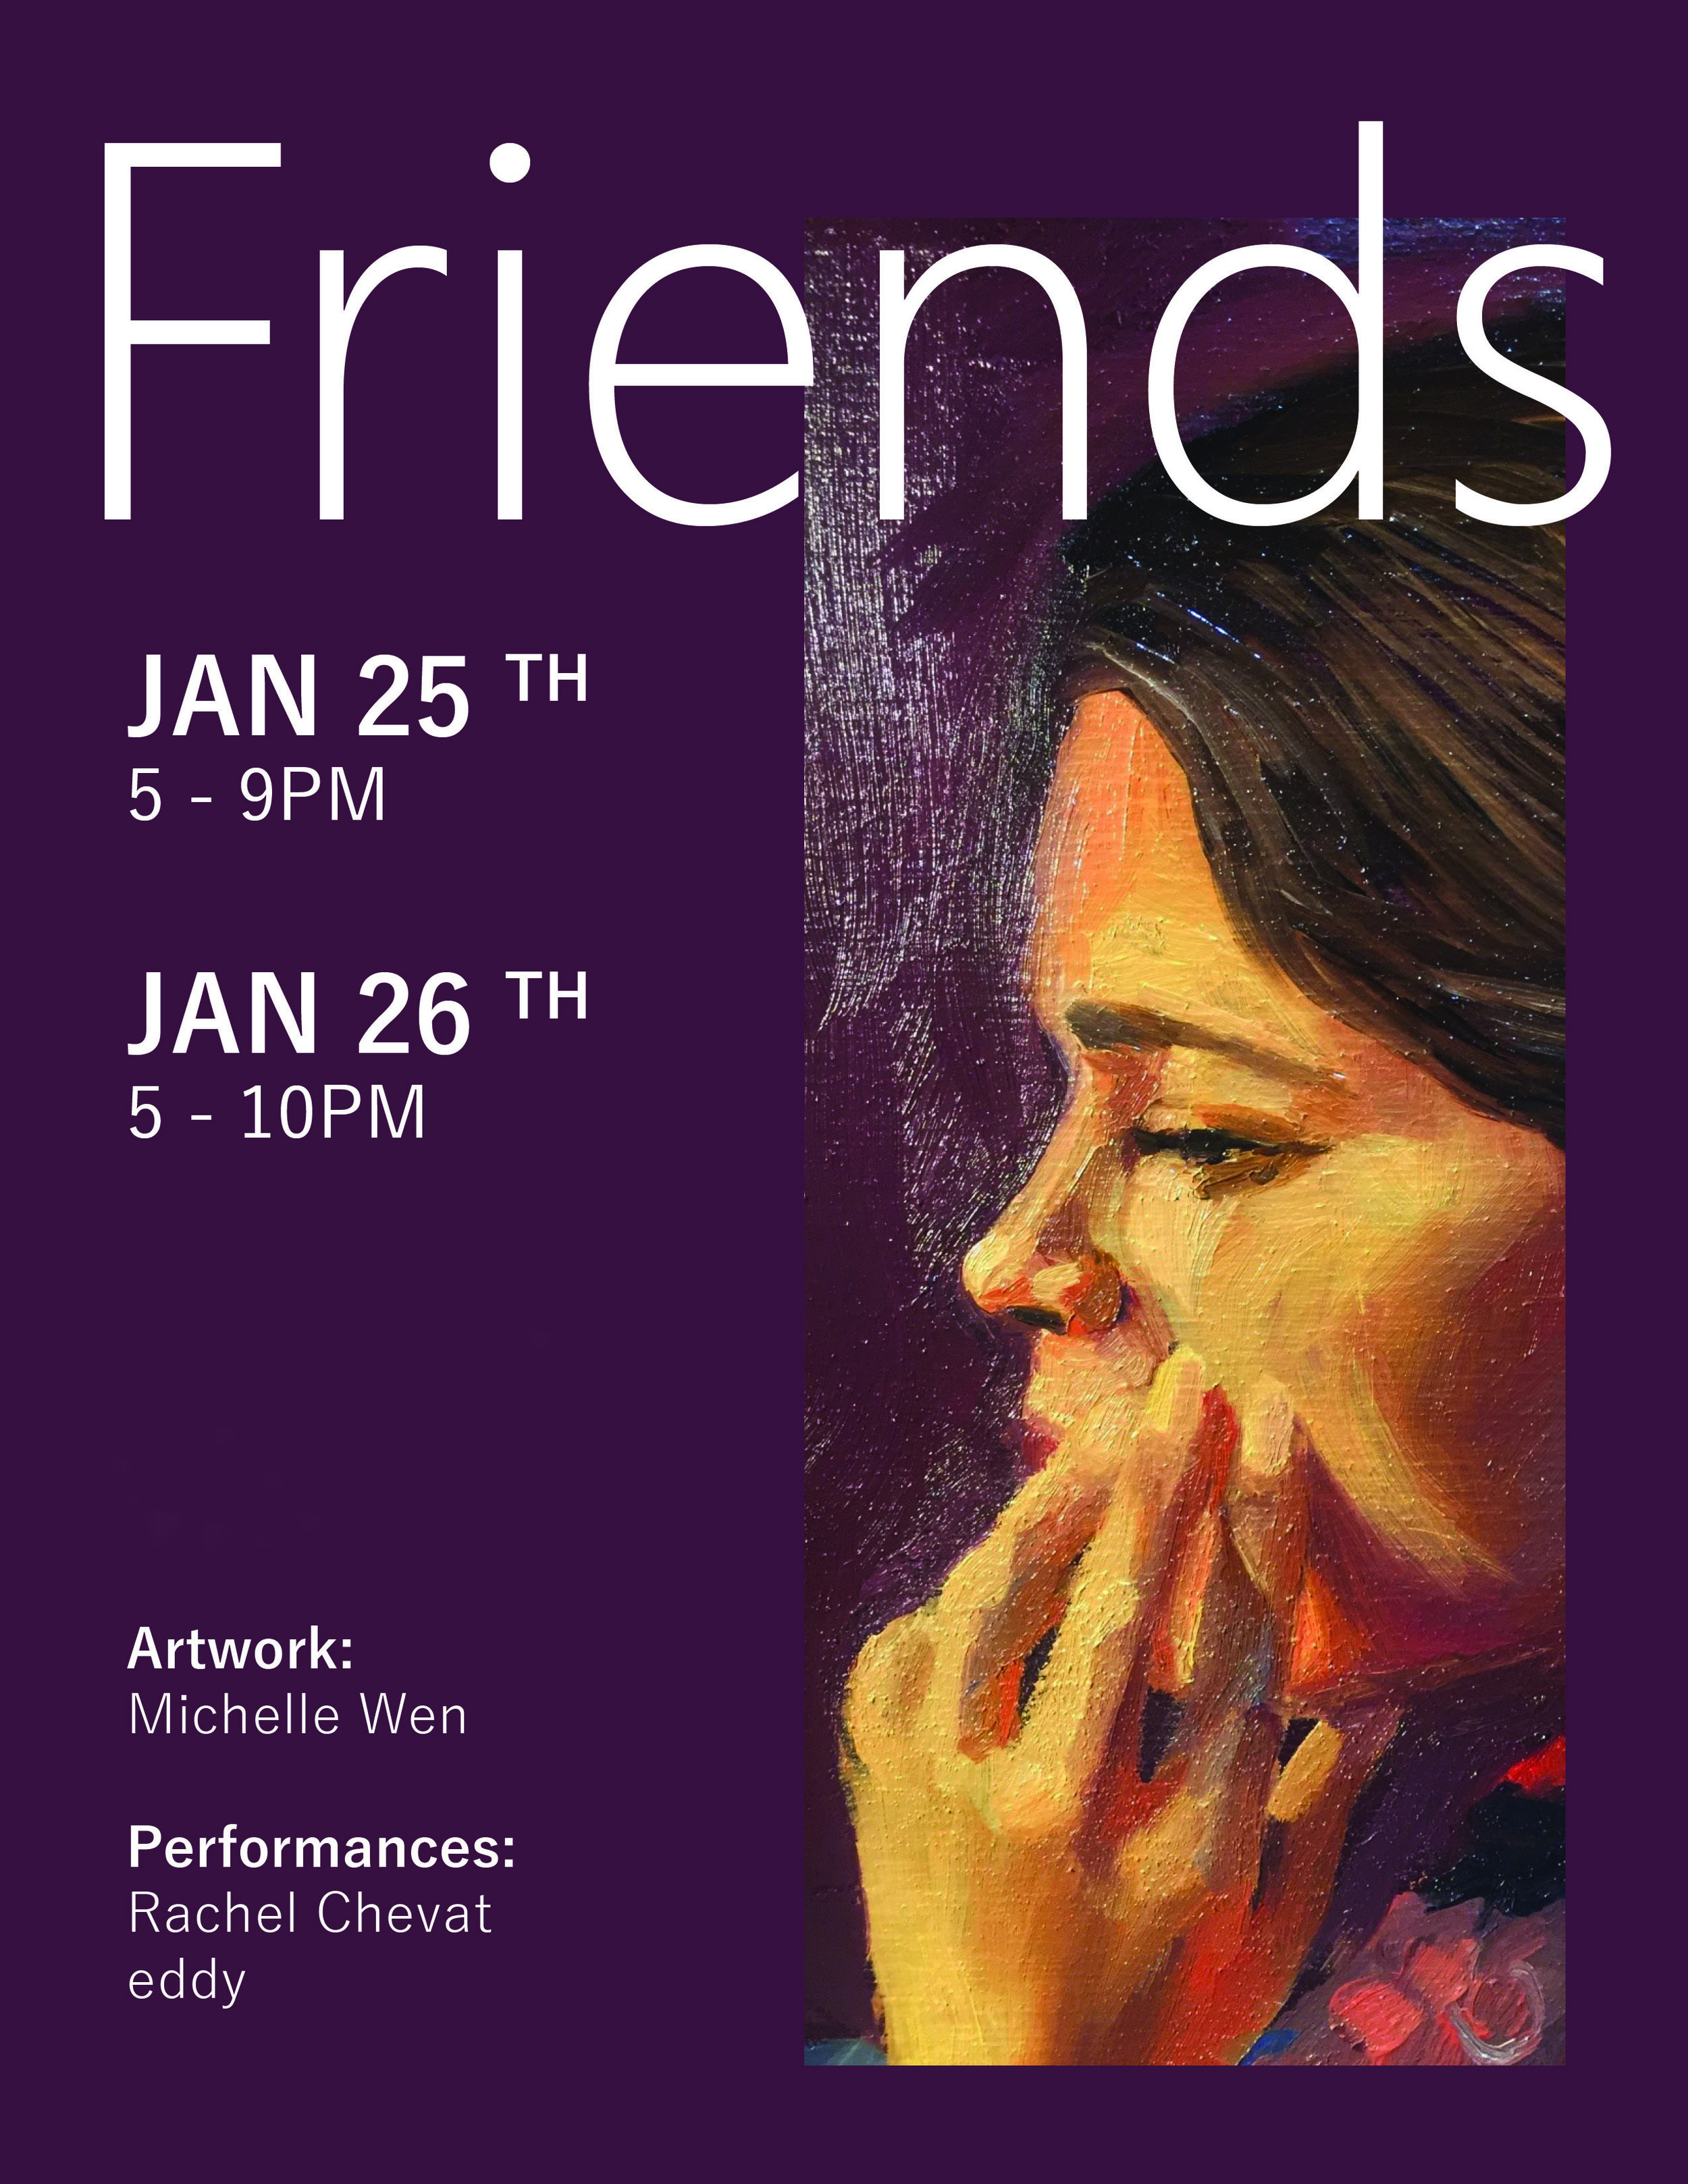 """Friends"" - Friends is a two day art exhibition featuring the work of Michelle Wen (Our Teaching Artist.) The portraits of a diverse group of friends will be displayed along with the handmade ceramics and pottery sale, in which 15% of all sales go towards funding art classes and upcoming Give Back events at The UnSpace. The show featured two performances by musicians Rachel Chevat and eddy, giving these up-and-coming artists a platform to shine."